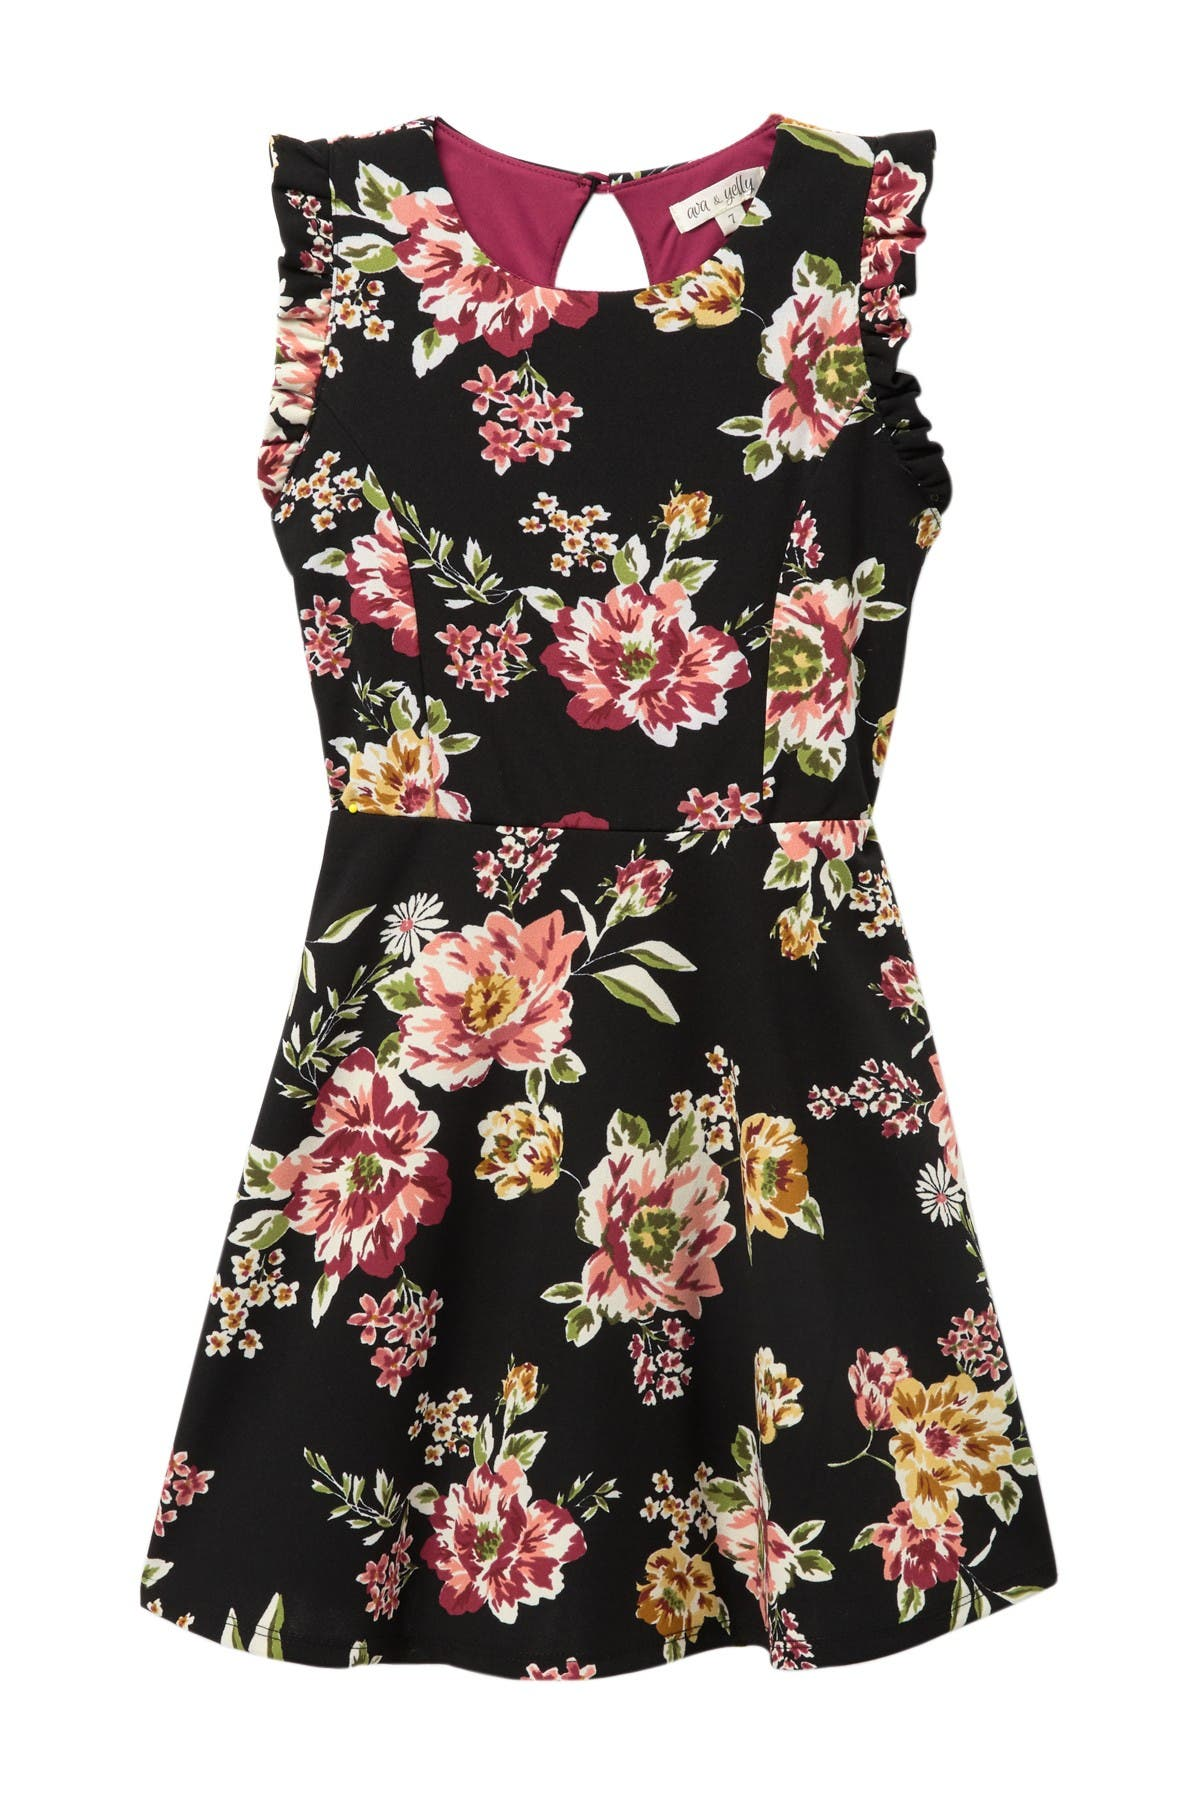 Image of AVA AND YELLY Floral Ruffle Sleeve Skater Dress